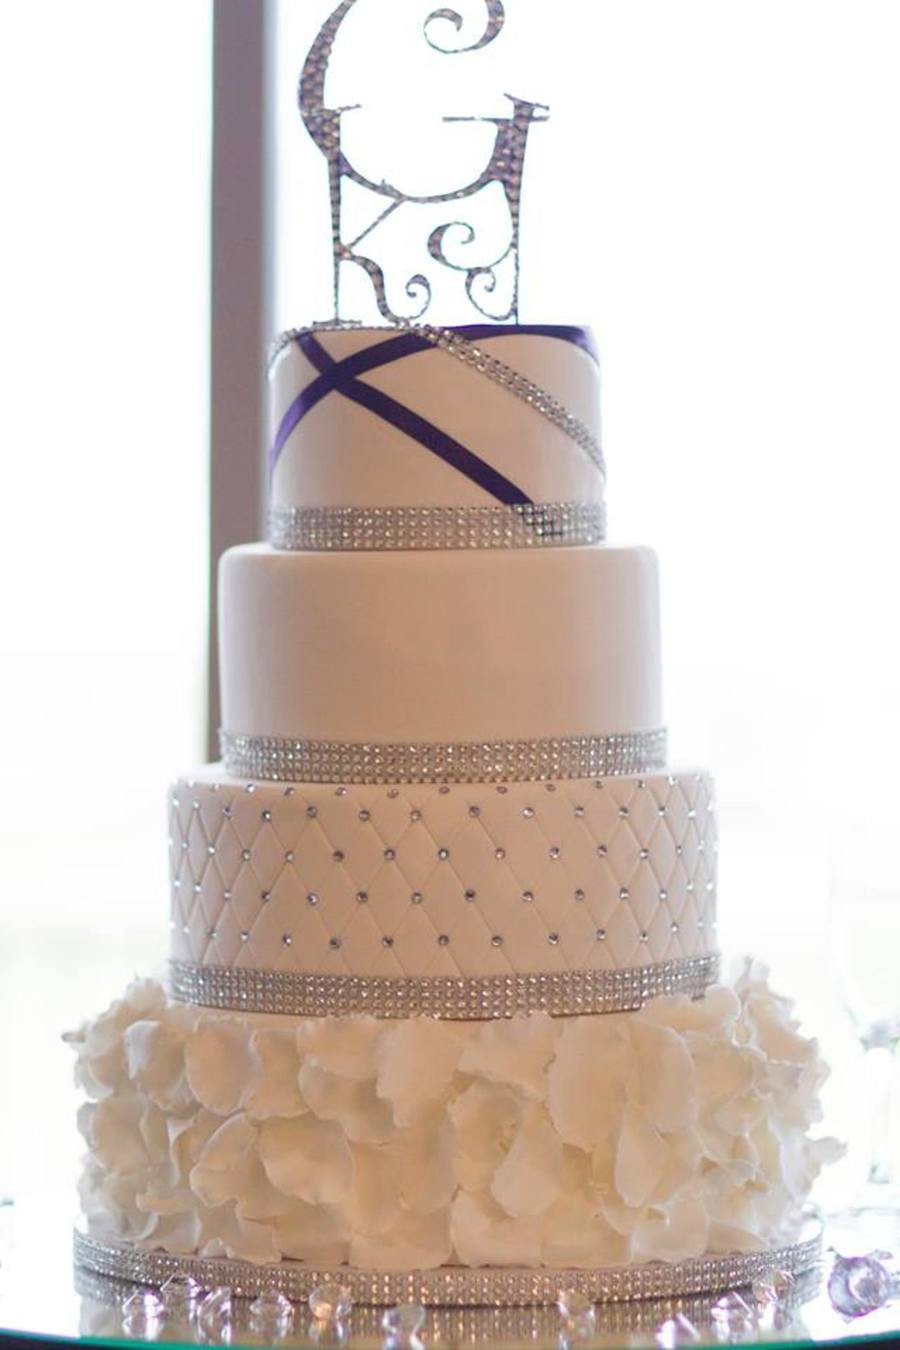 Blinged Out Wedding Cakes  Blinged Out Wedding Cake CakeCentral